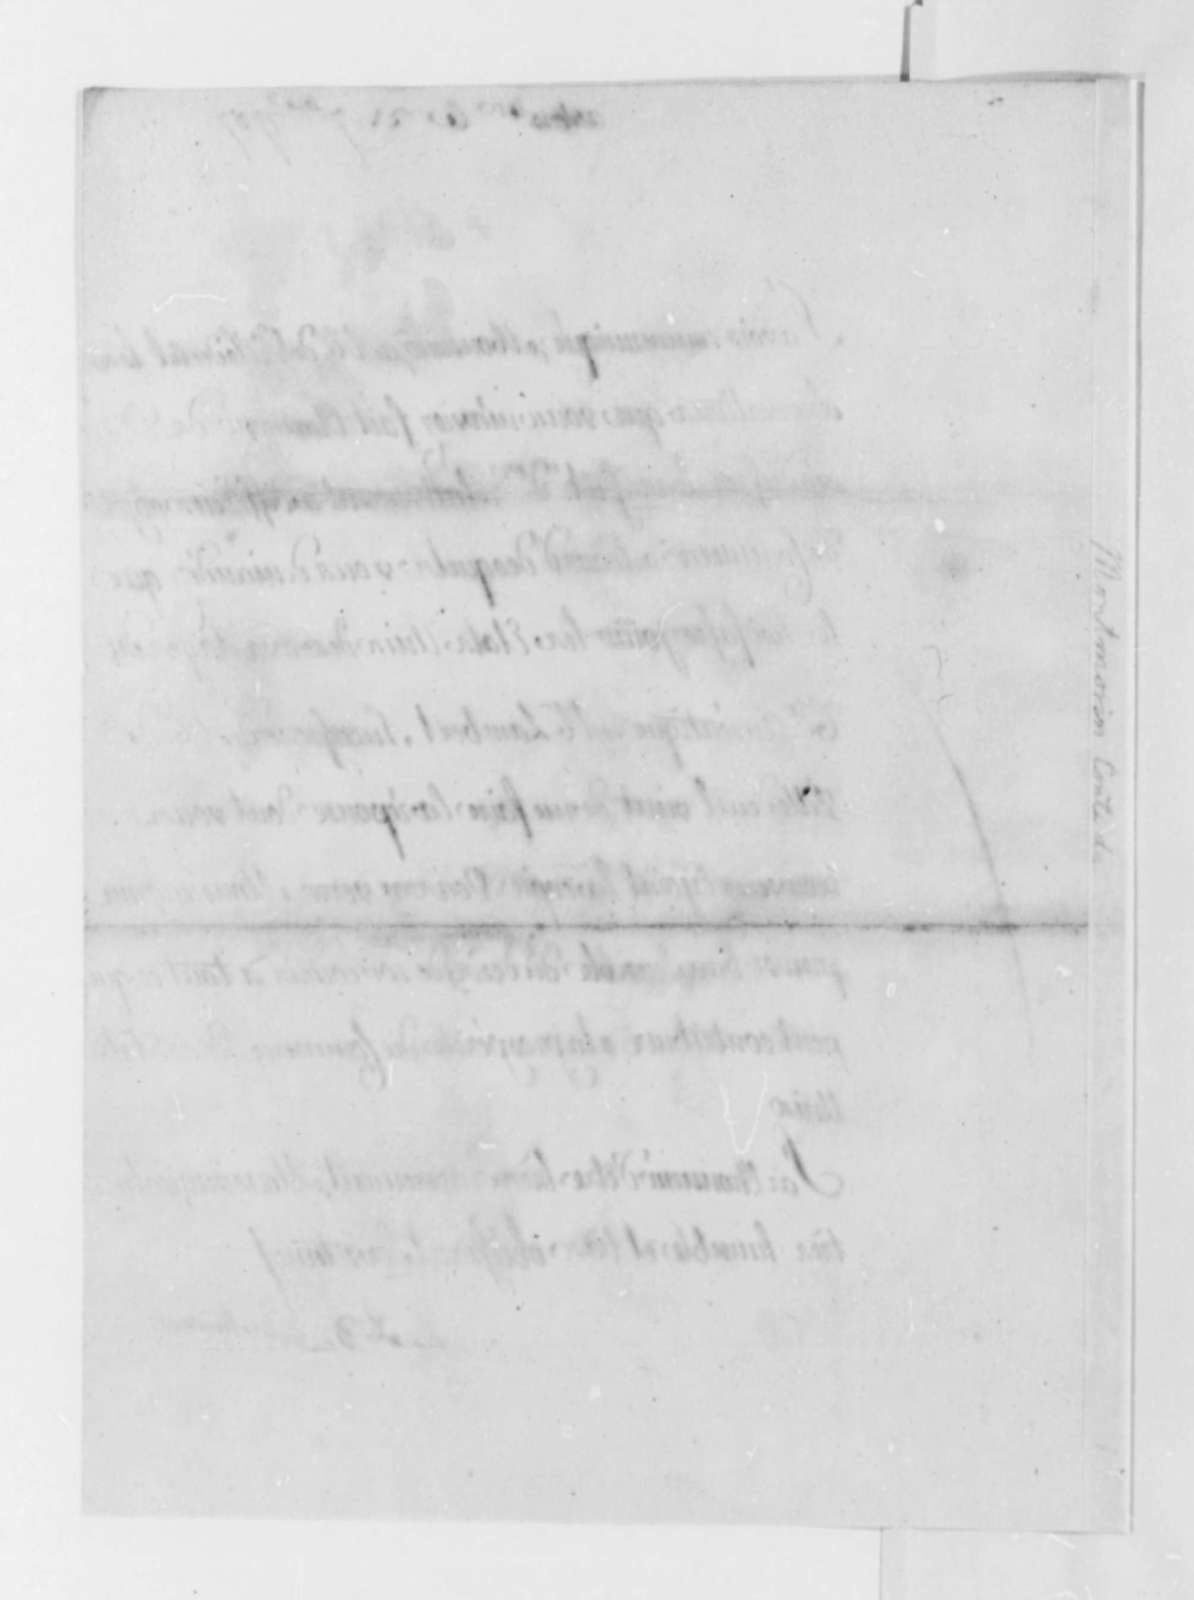 Armand-Marc, Comte de Montmorin-Saint-Herem to Thomas Jefferson, September 21, 1787, in French; with Copy